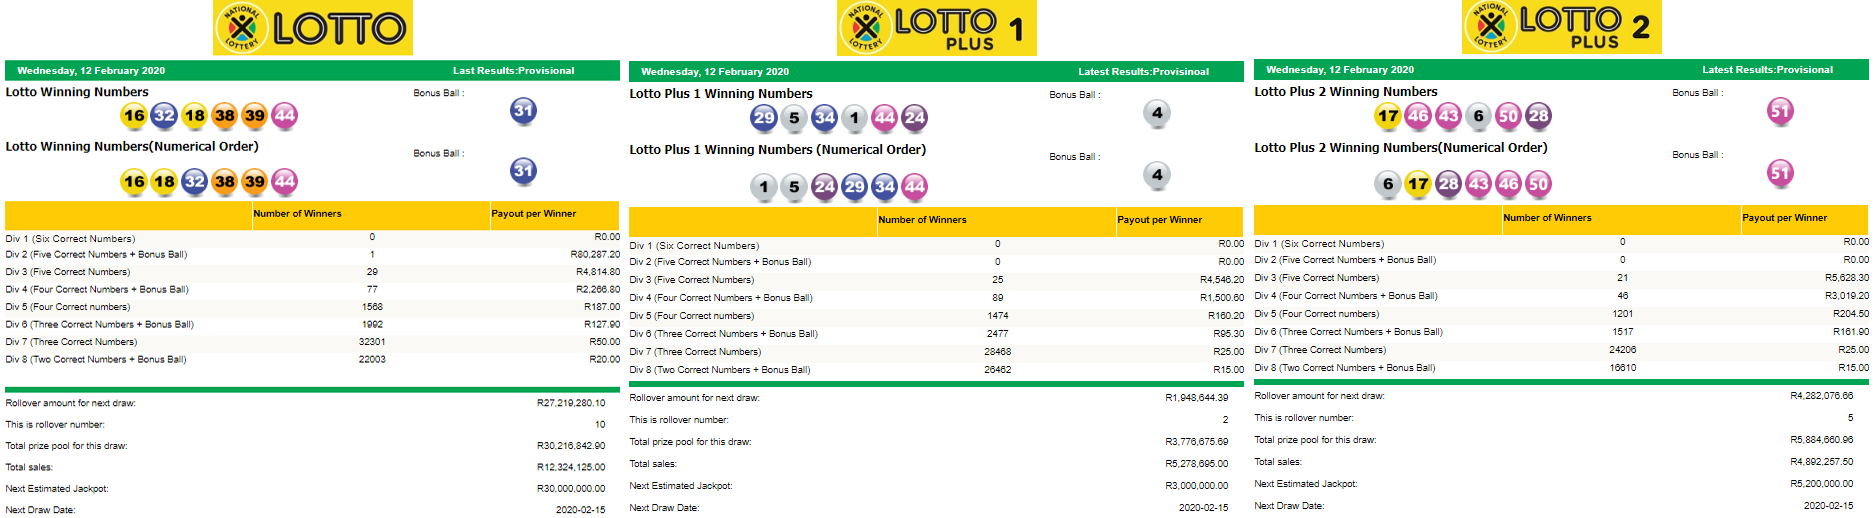 Latest lottery results - south africa